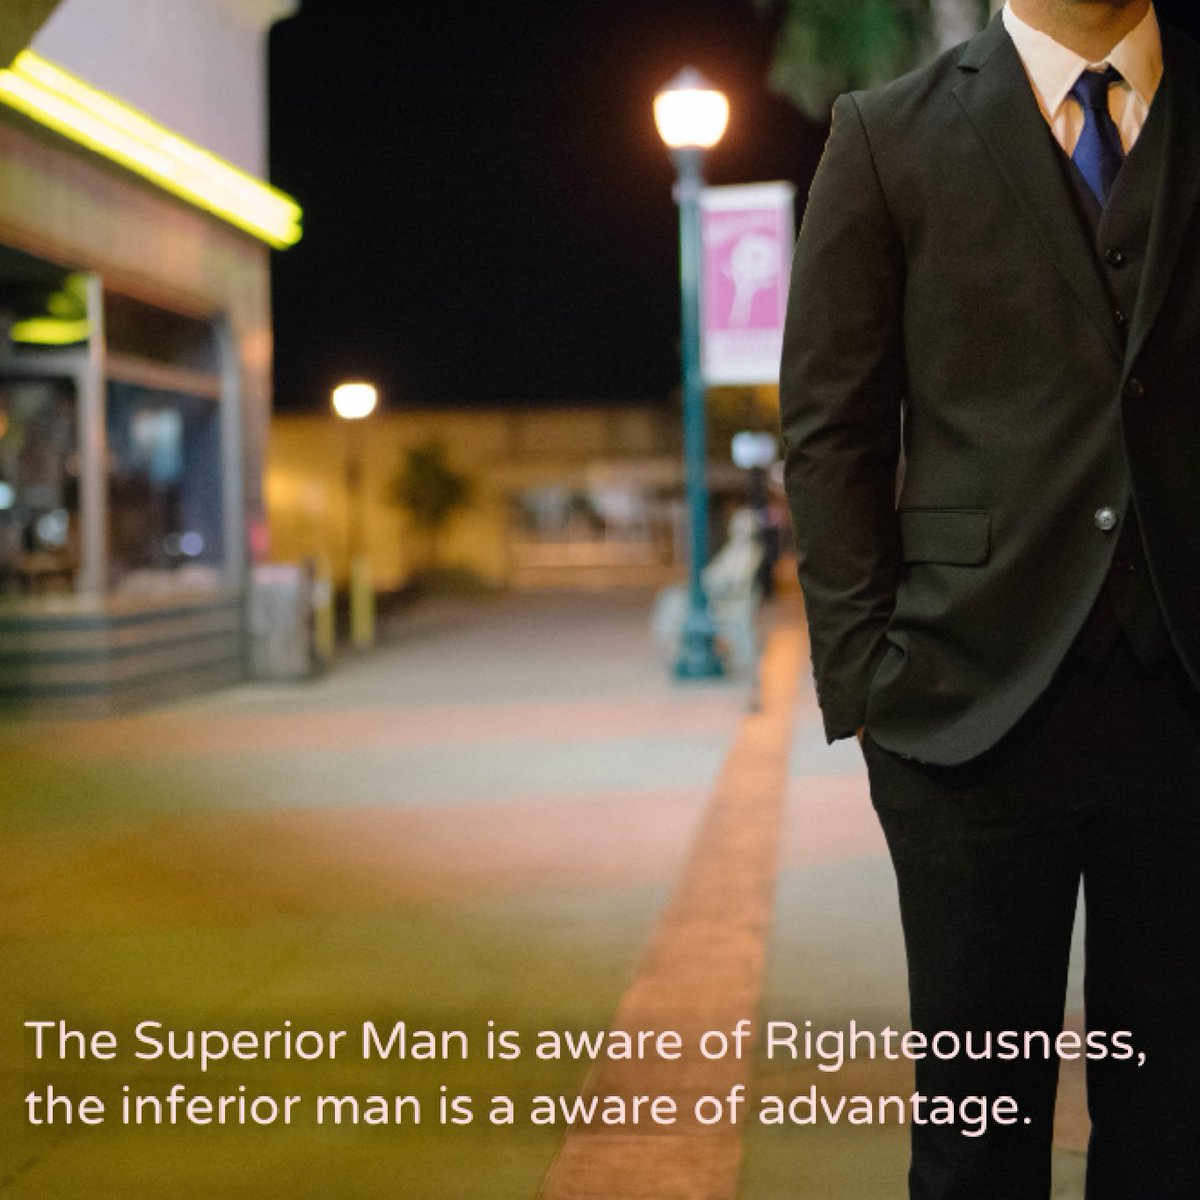 The #SuperiorMan is aware of #Righteousness, the inferior man is a aware of #advantage.  #FridayEve<br>http://pic.twitter.com/HIe4FpU8bV